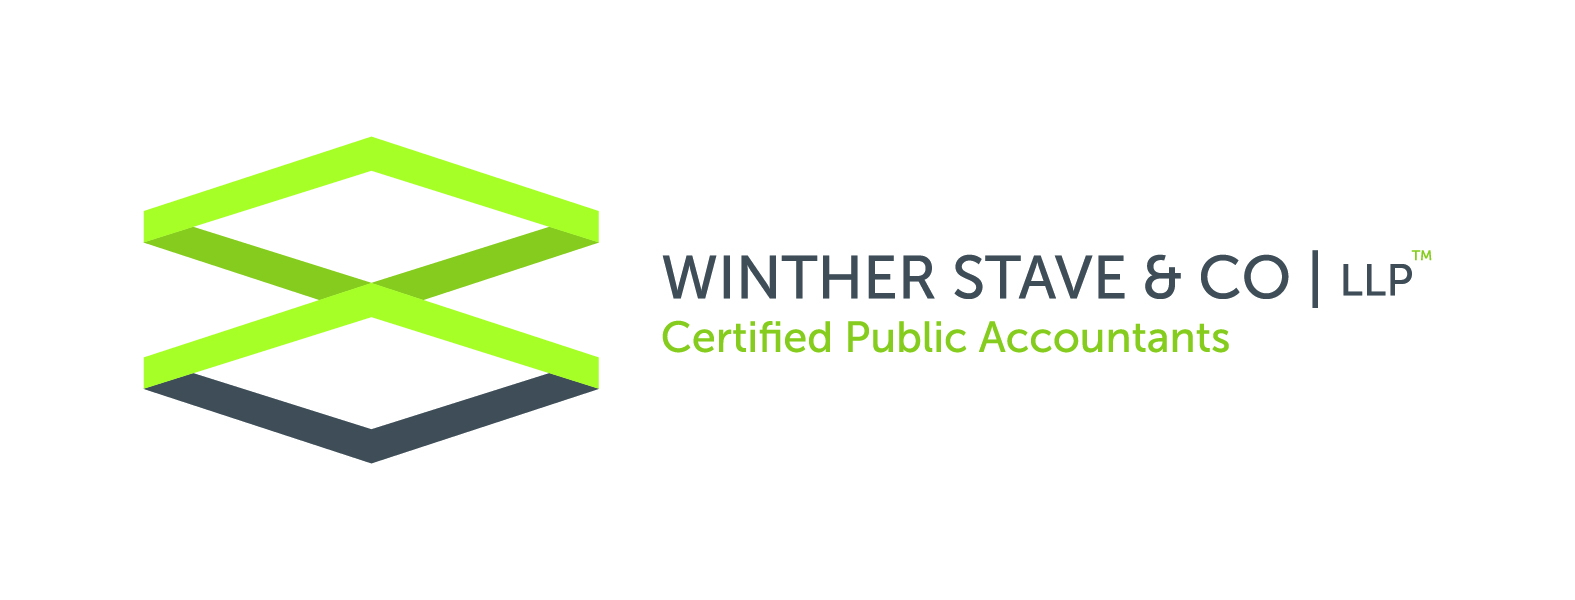 Winther, Stave & Co. LLP